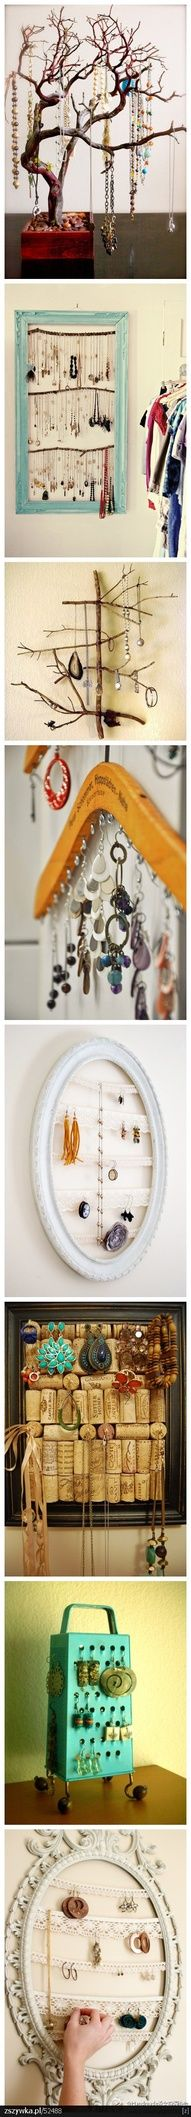 Creative jewellery hangers - FameBoards - Fameboards - A pinboard site with no limits or rules- Be Famous and Free